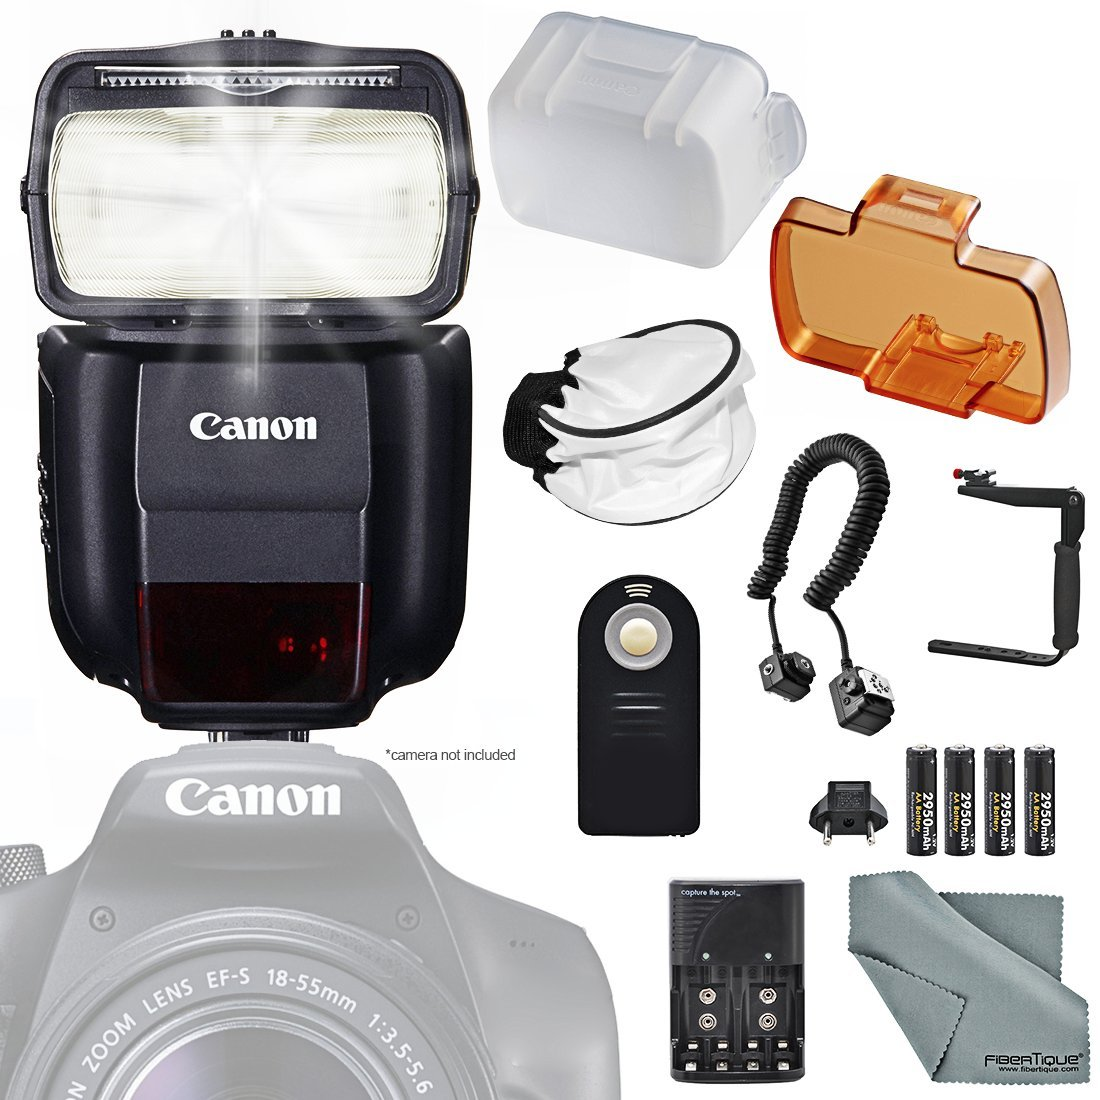 Canon Speedlite 430EX III-RT Flash (0585C006) w/ Essential Bundle Includes: 180Degree Quick Flip Bracket, Camera Flash Cords, Soft Diffuser, Remote Control and FiberTique Microfiber Cleaning Cloth